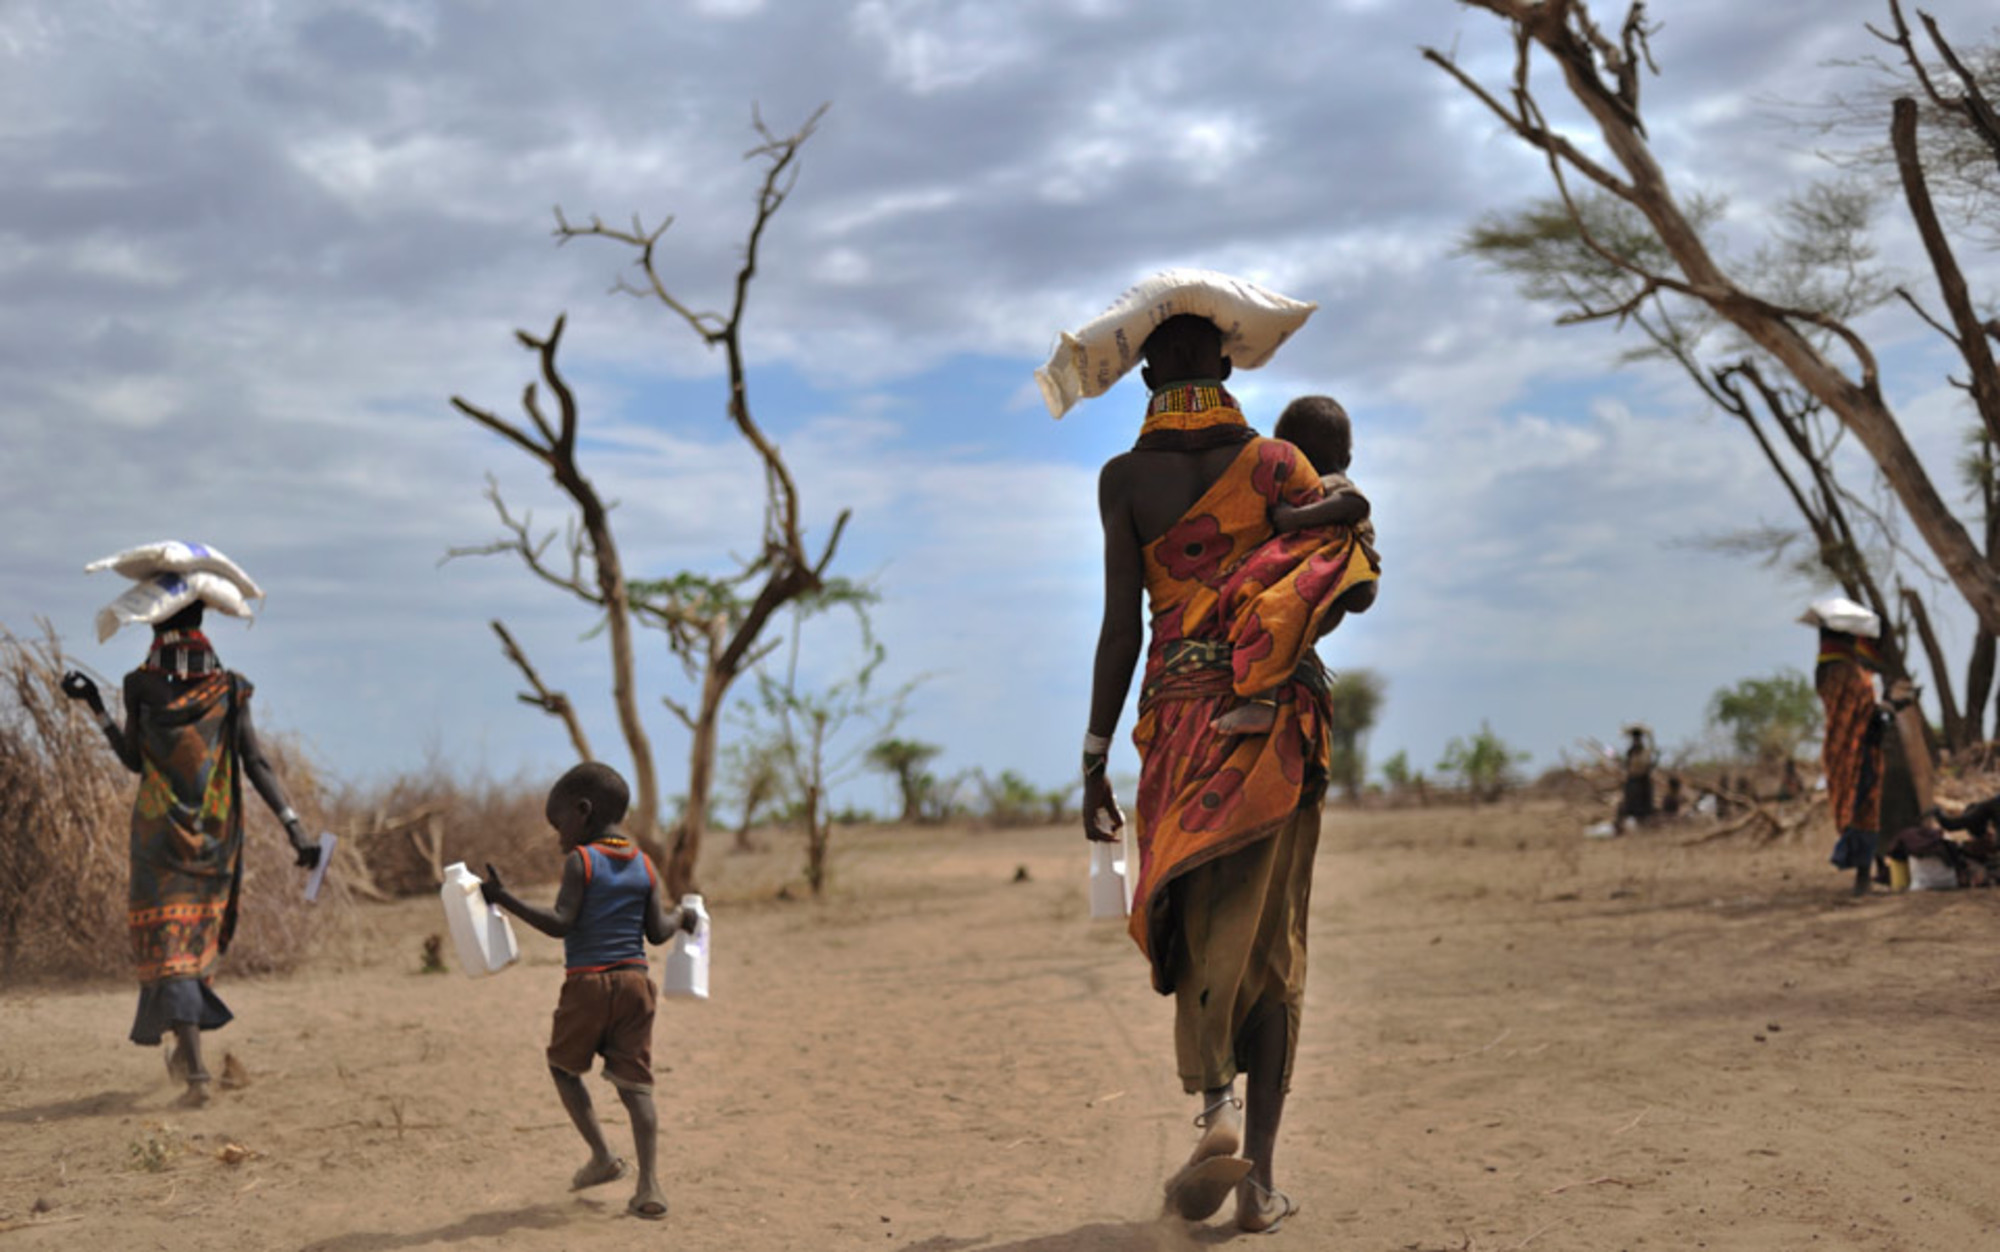 will oil turn arid turkana into the new delta aeon essays